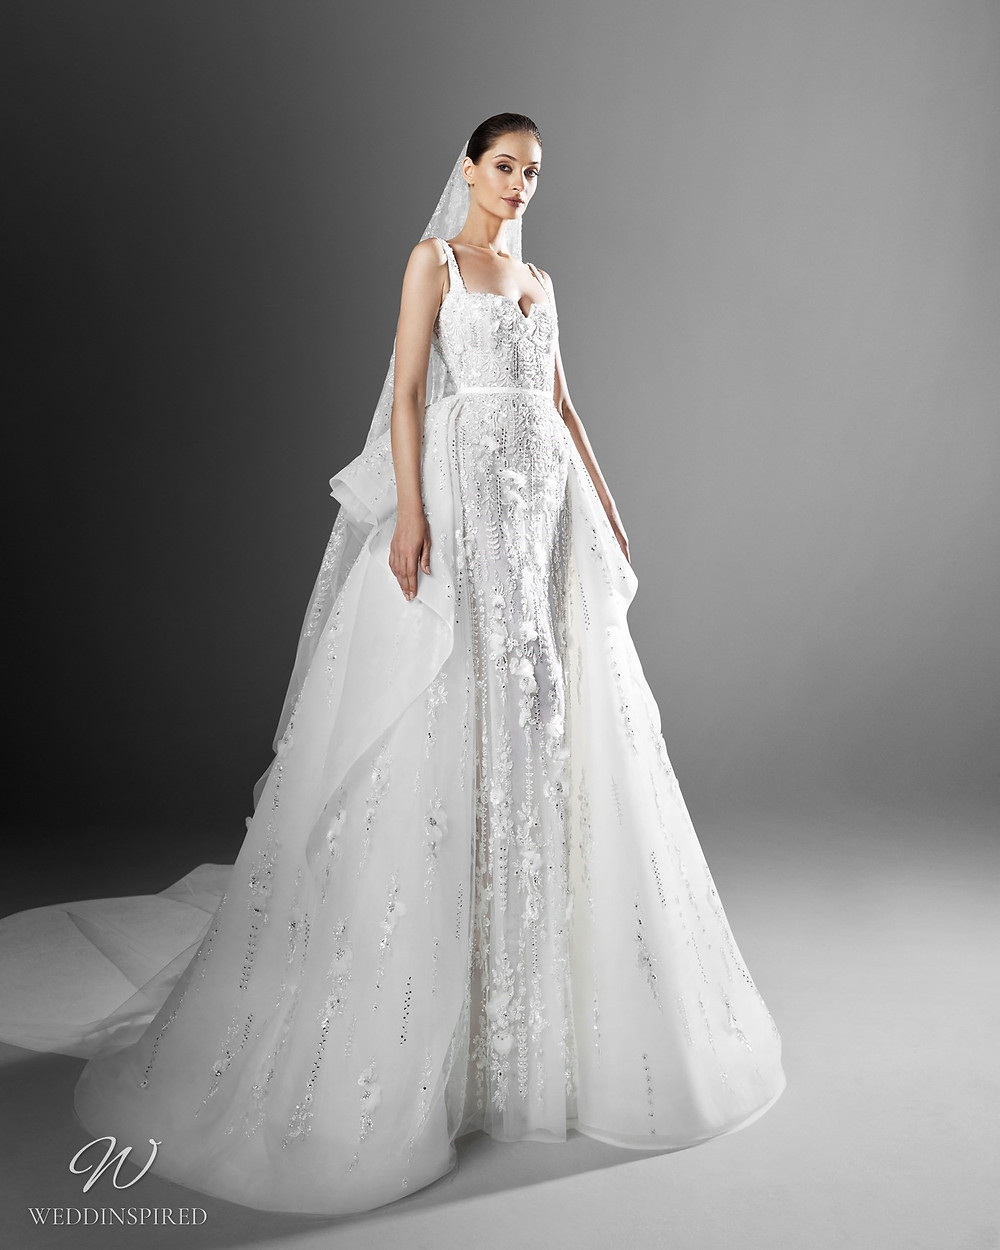 A Zuhair Murad mermaid wedding dress with a detachable skirt and crystals